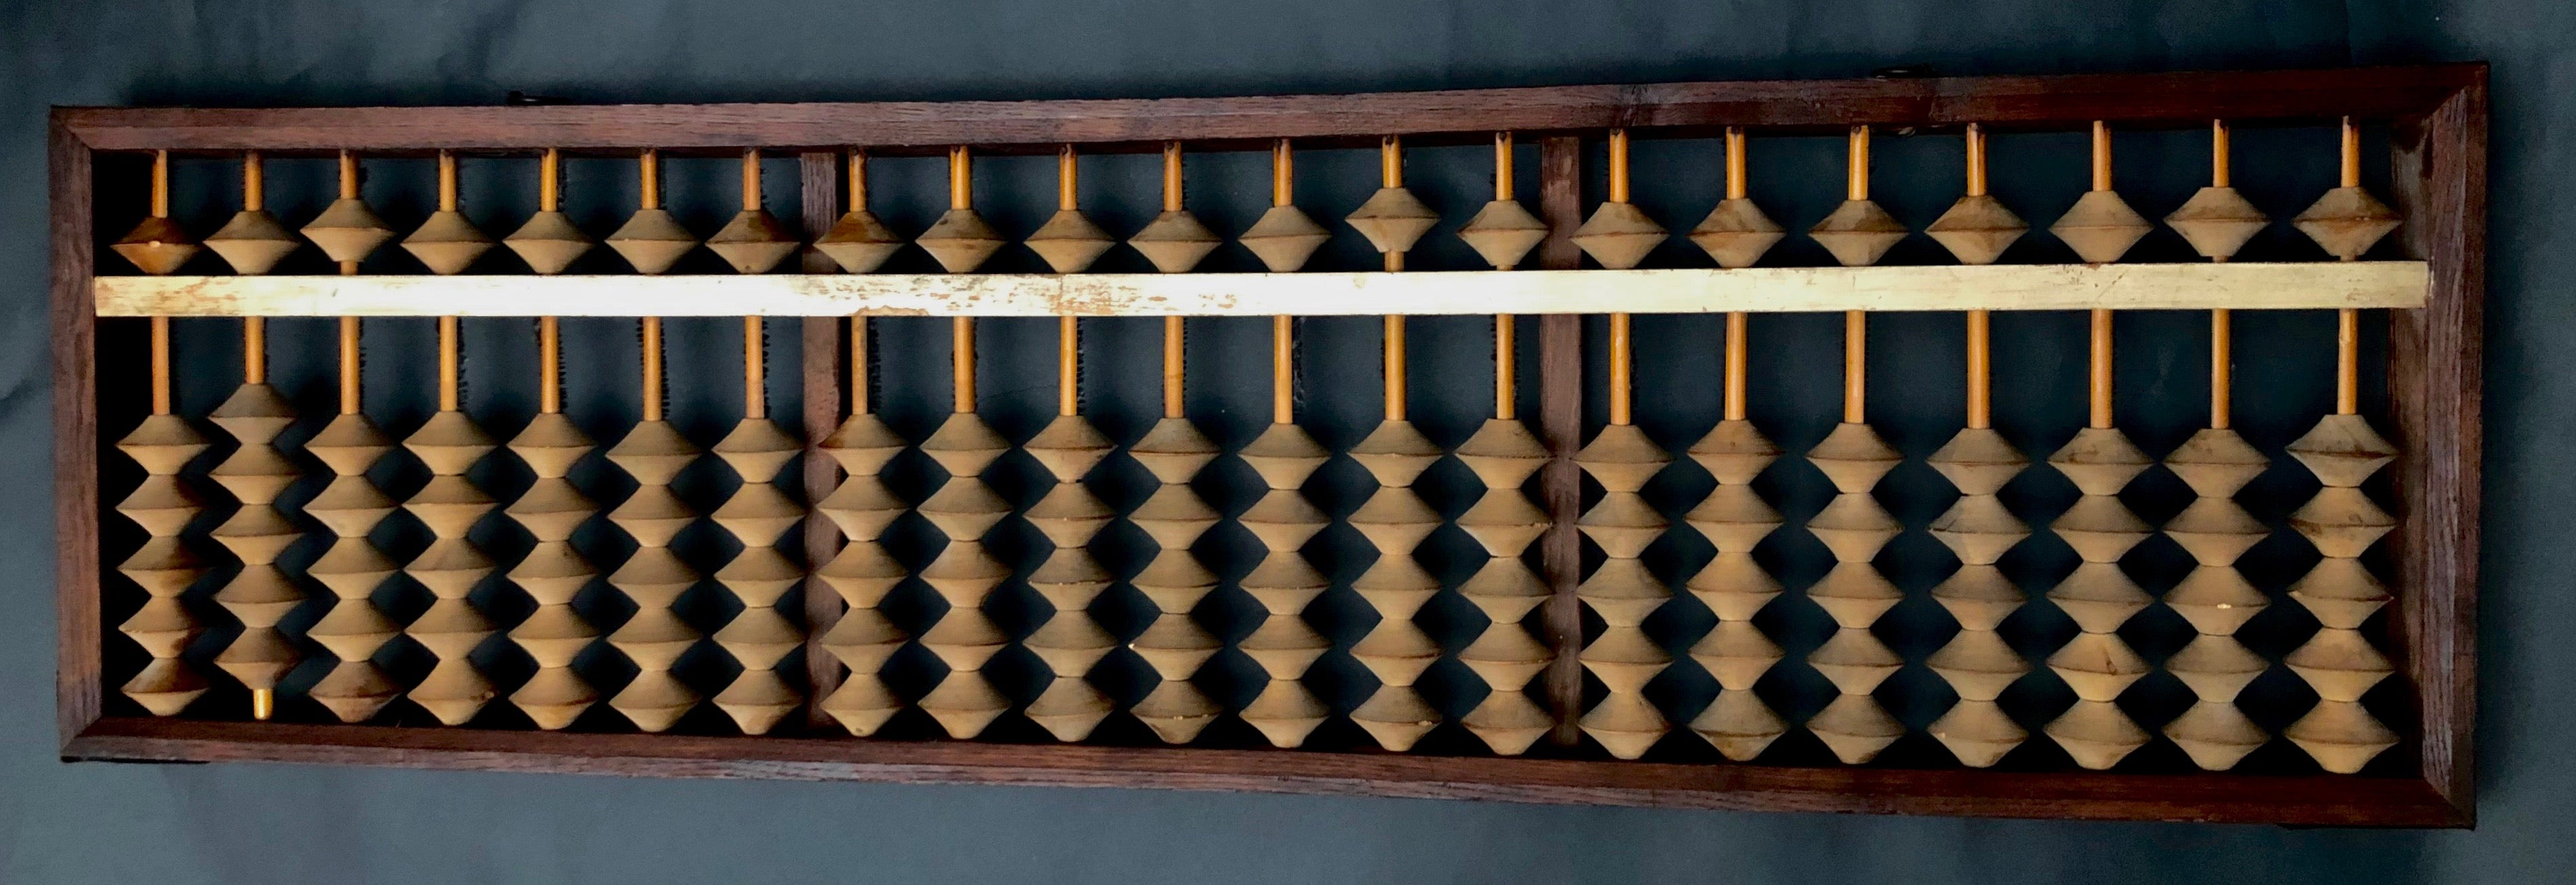 Japanese Antique Kanban | Soroban / Abacus | Taisho Period